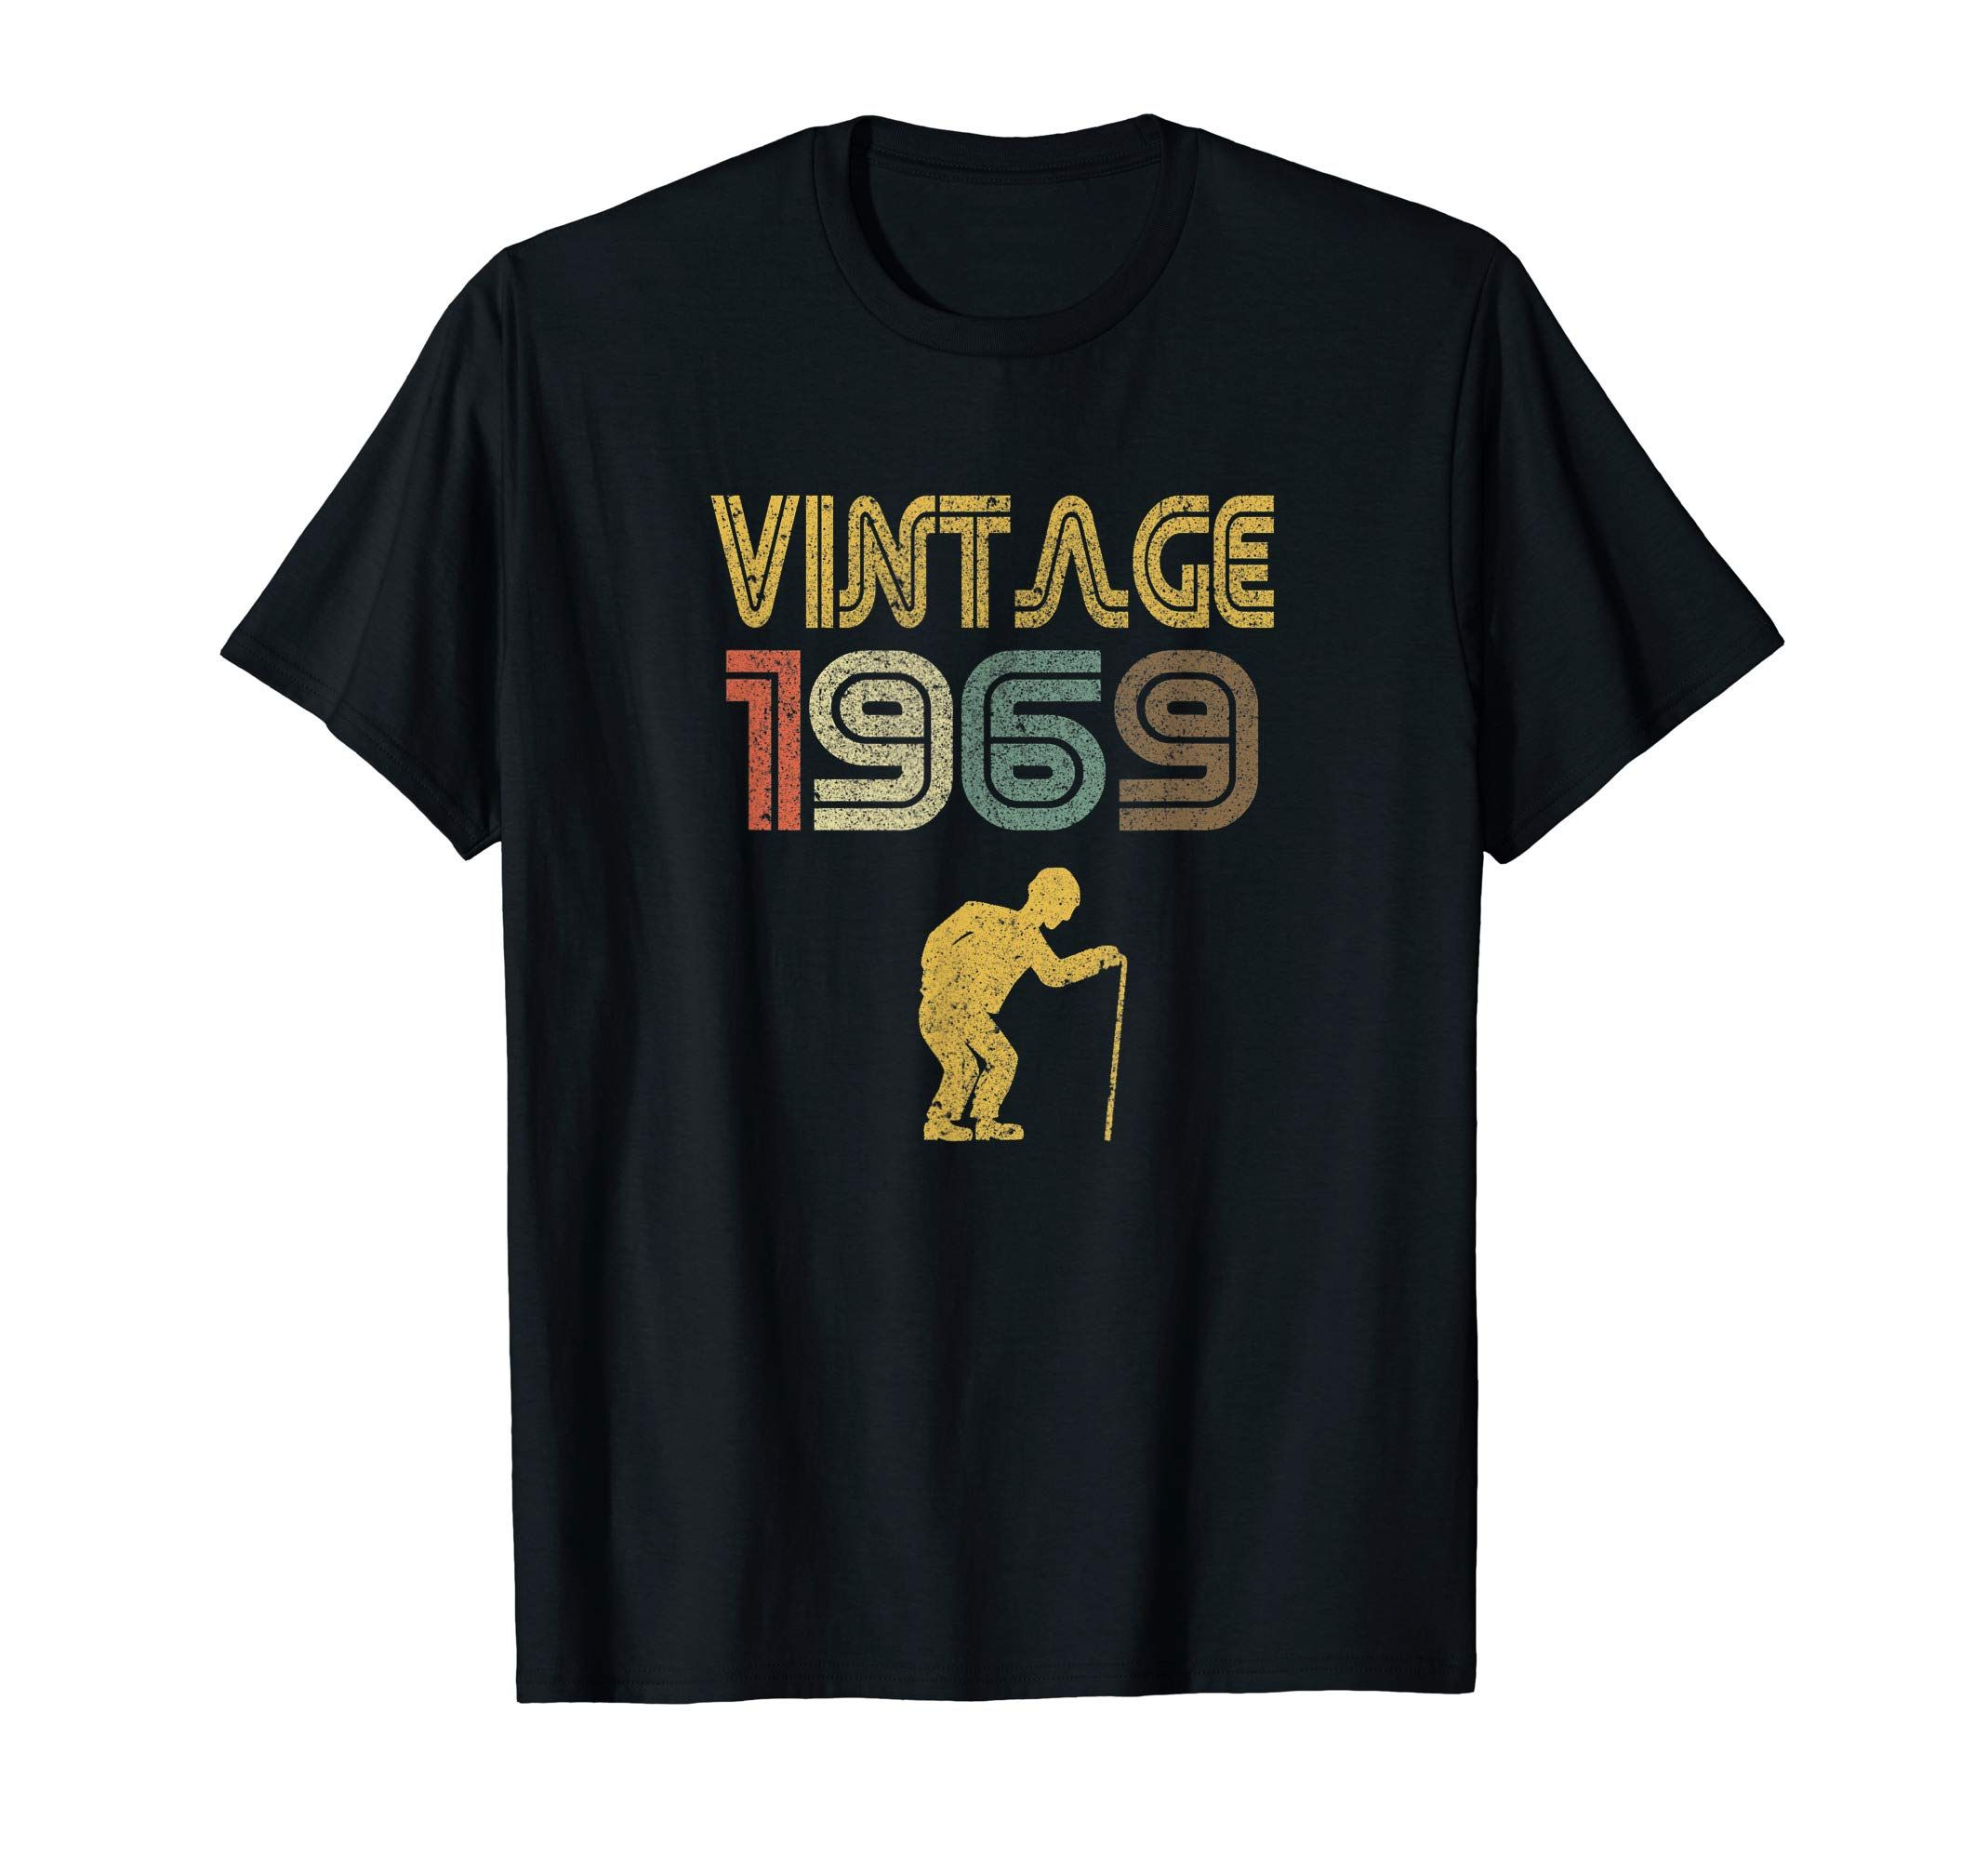 """88b3b074 Vintage 1969 T-Shirt - Funny 50th Birthday Gift - Know somebody turning 50?  This """"Vintage 1969"""" 50th Birthday T-Shirt will make a great gift for men,  ..."""